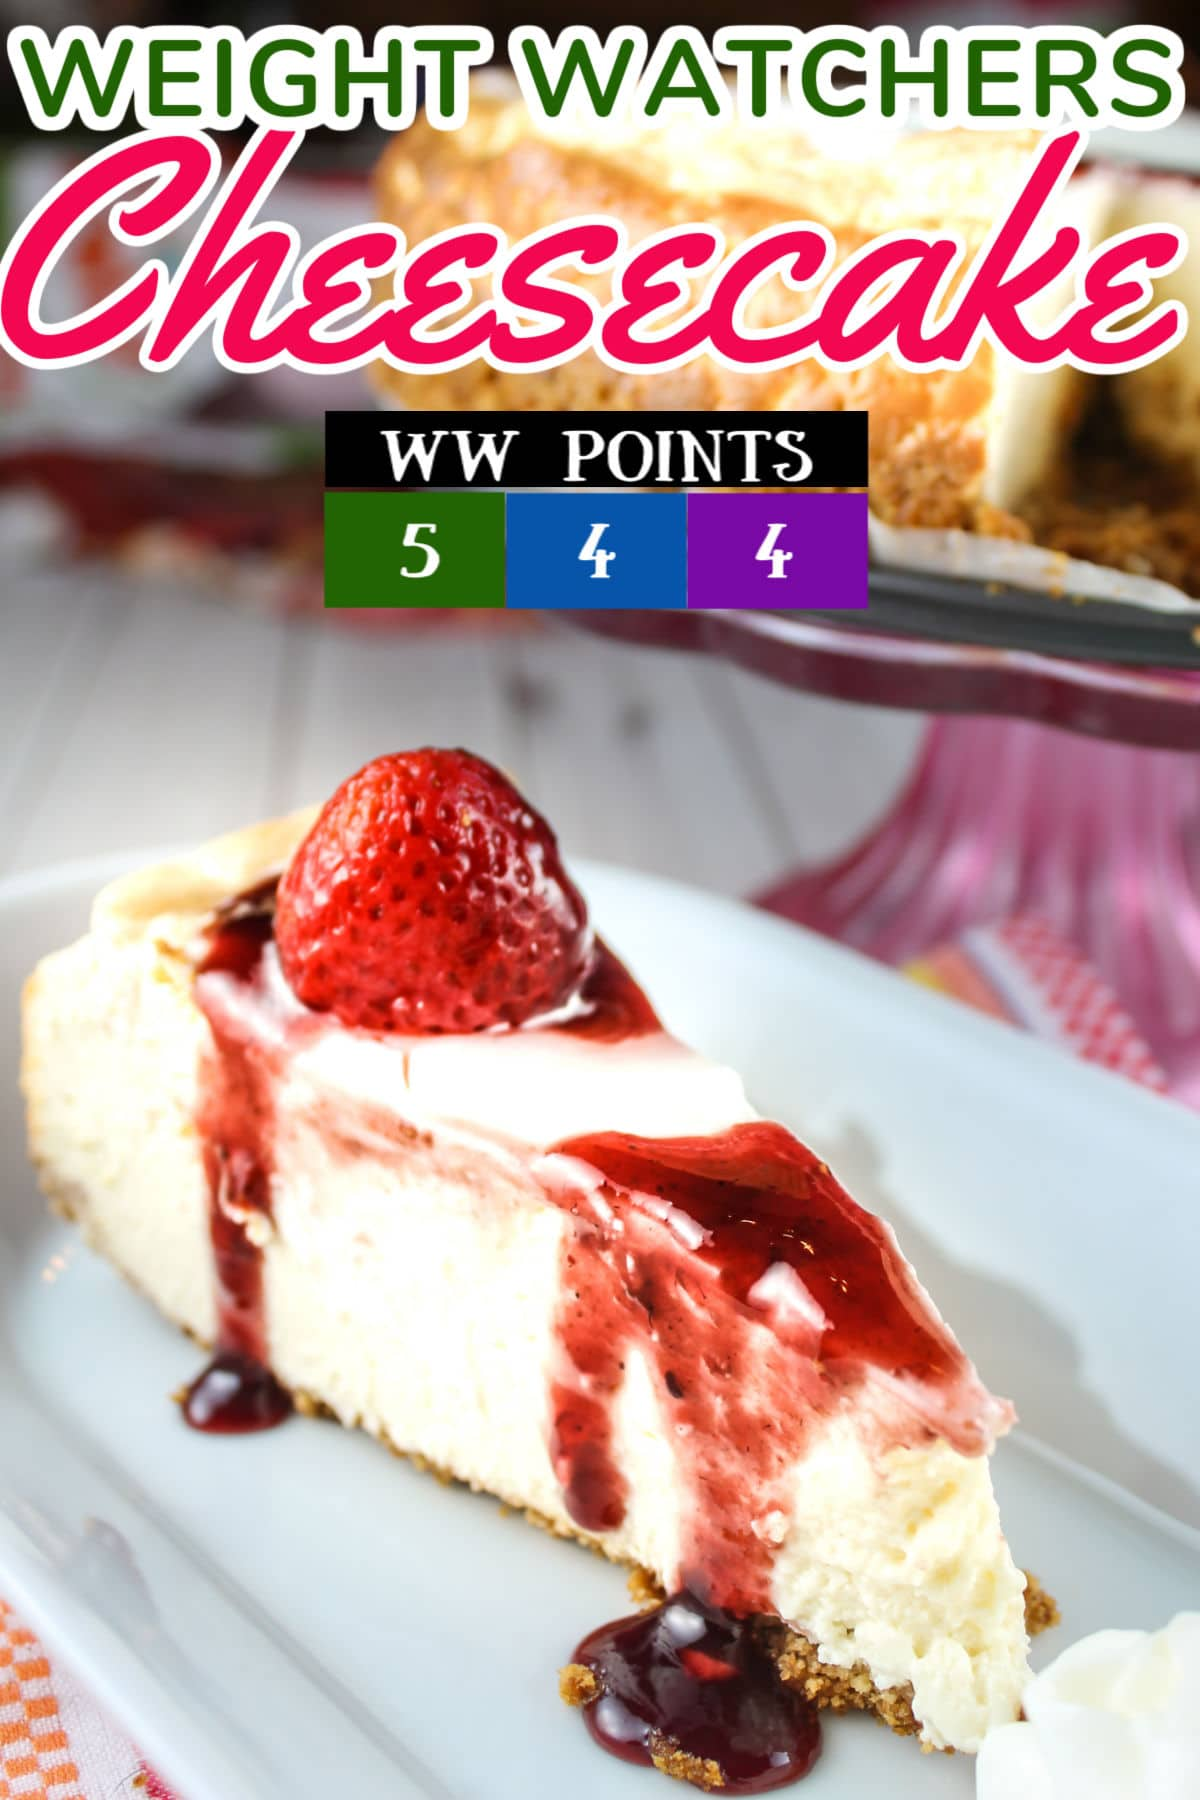 """This Weight Watchers Cheesecake recipe is SO DELICIOUS! You wont' realize it's """"light"""" (I won't actually call it healthy - haha). I started with a Cheesecake Factory Original Cheesecake Recipe and then substituted ingredients to make it healthier.  via @foodhussy"""